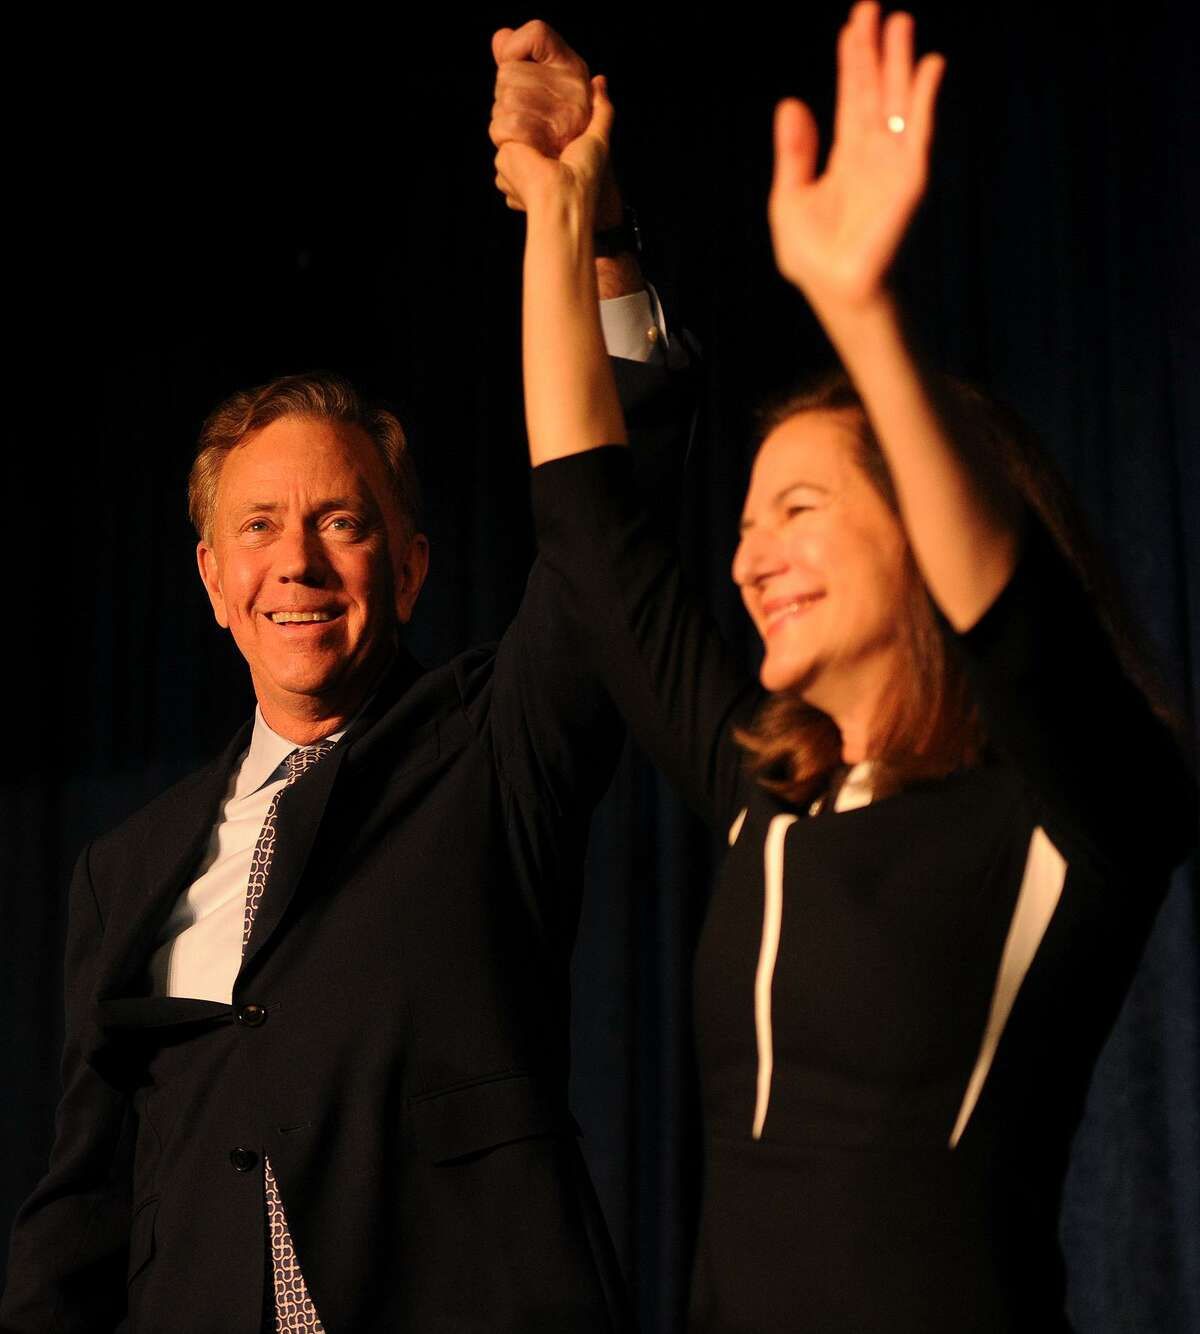 Governor-elect Ned Lamont and Lt. Governor-elect Susan Bysiewicz celebrate their victory at Dunkin Donuts Park in Hartford on Nov. 7.